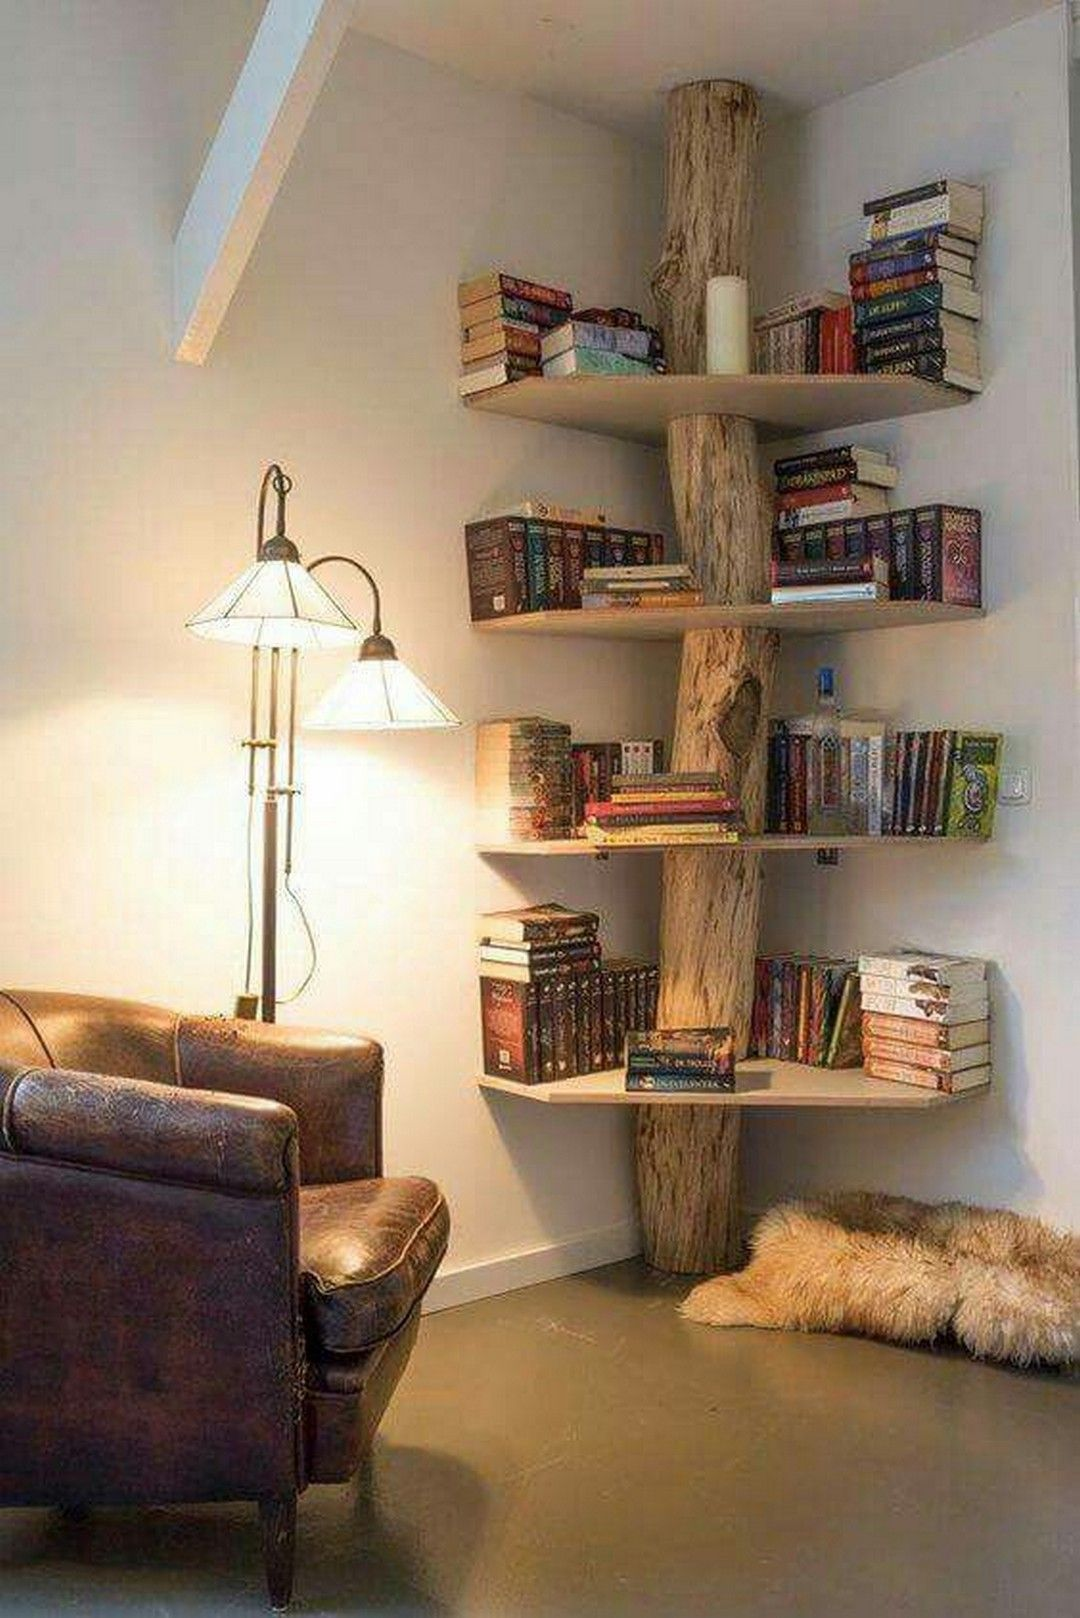 Cool 122 Cheap, Easy And Simple DIY Rustic Home Decor Ideas  Https://www.architecturehd.com/2017/05/22/122 Cheap Easy Simple Diy Rustic  Home Decor Ideas/